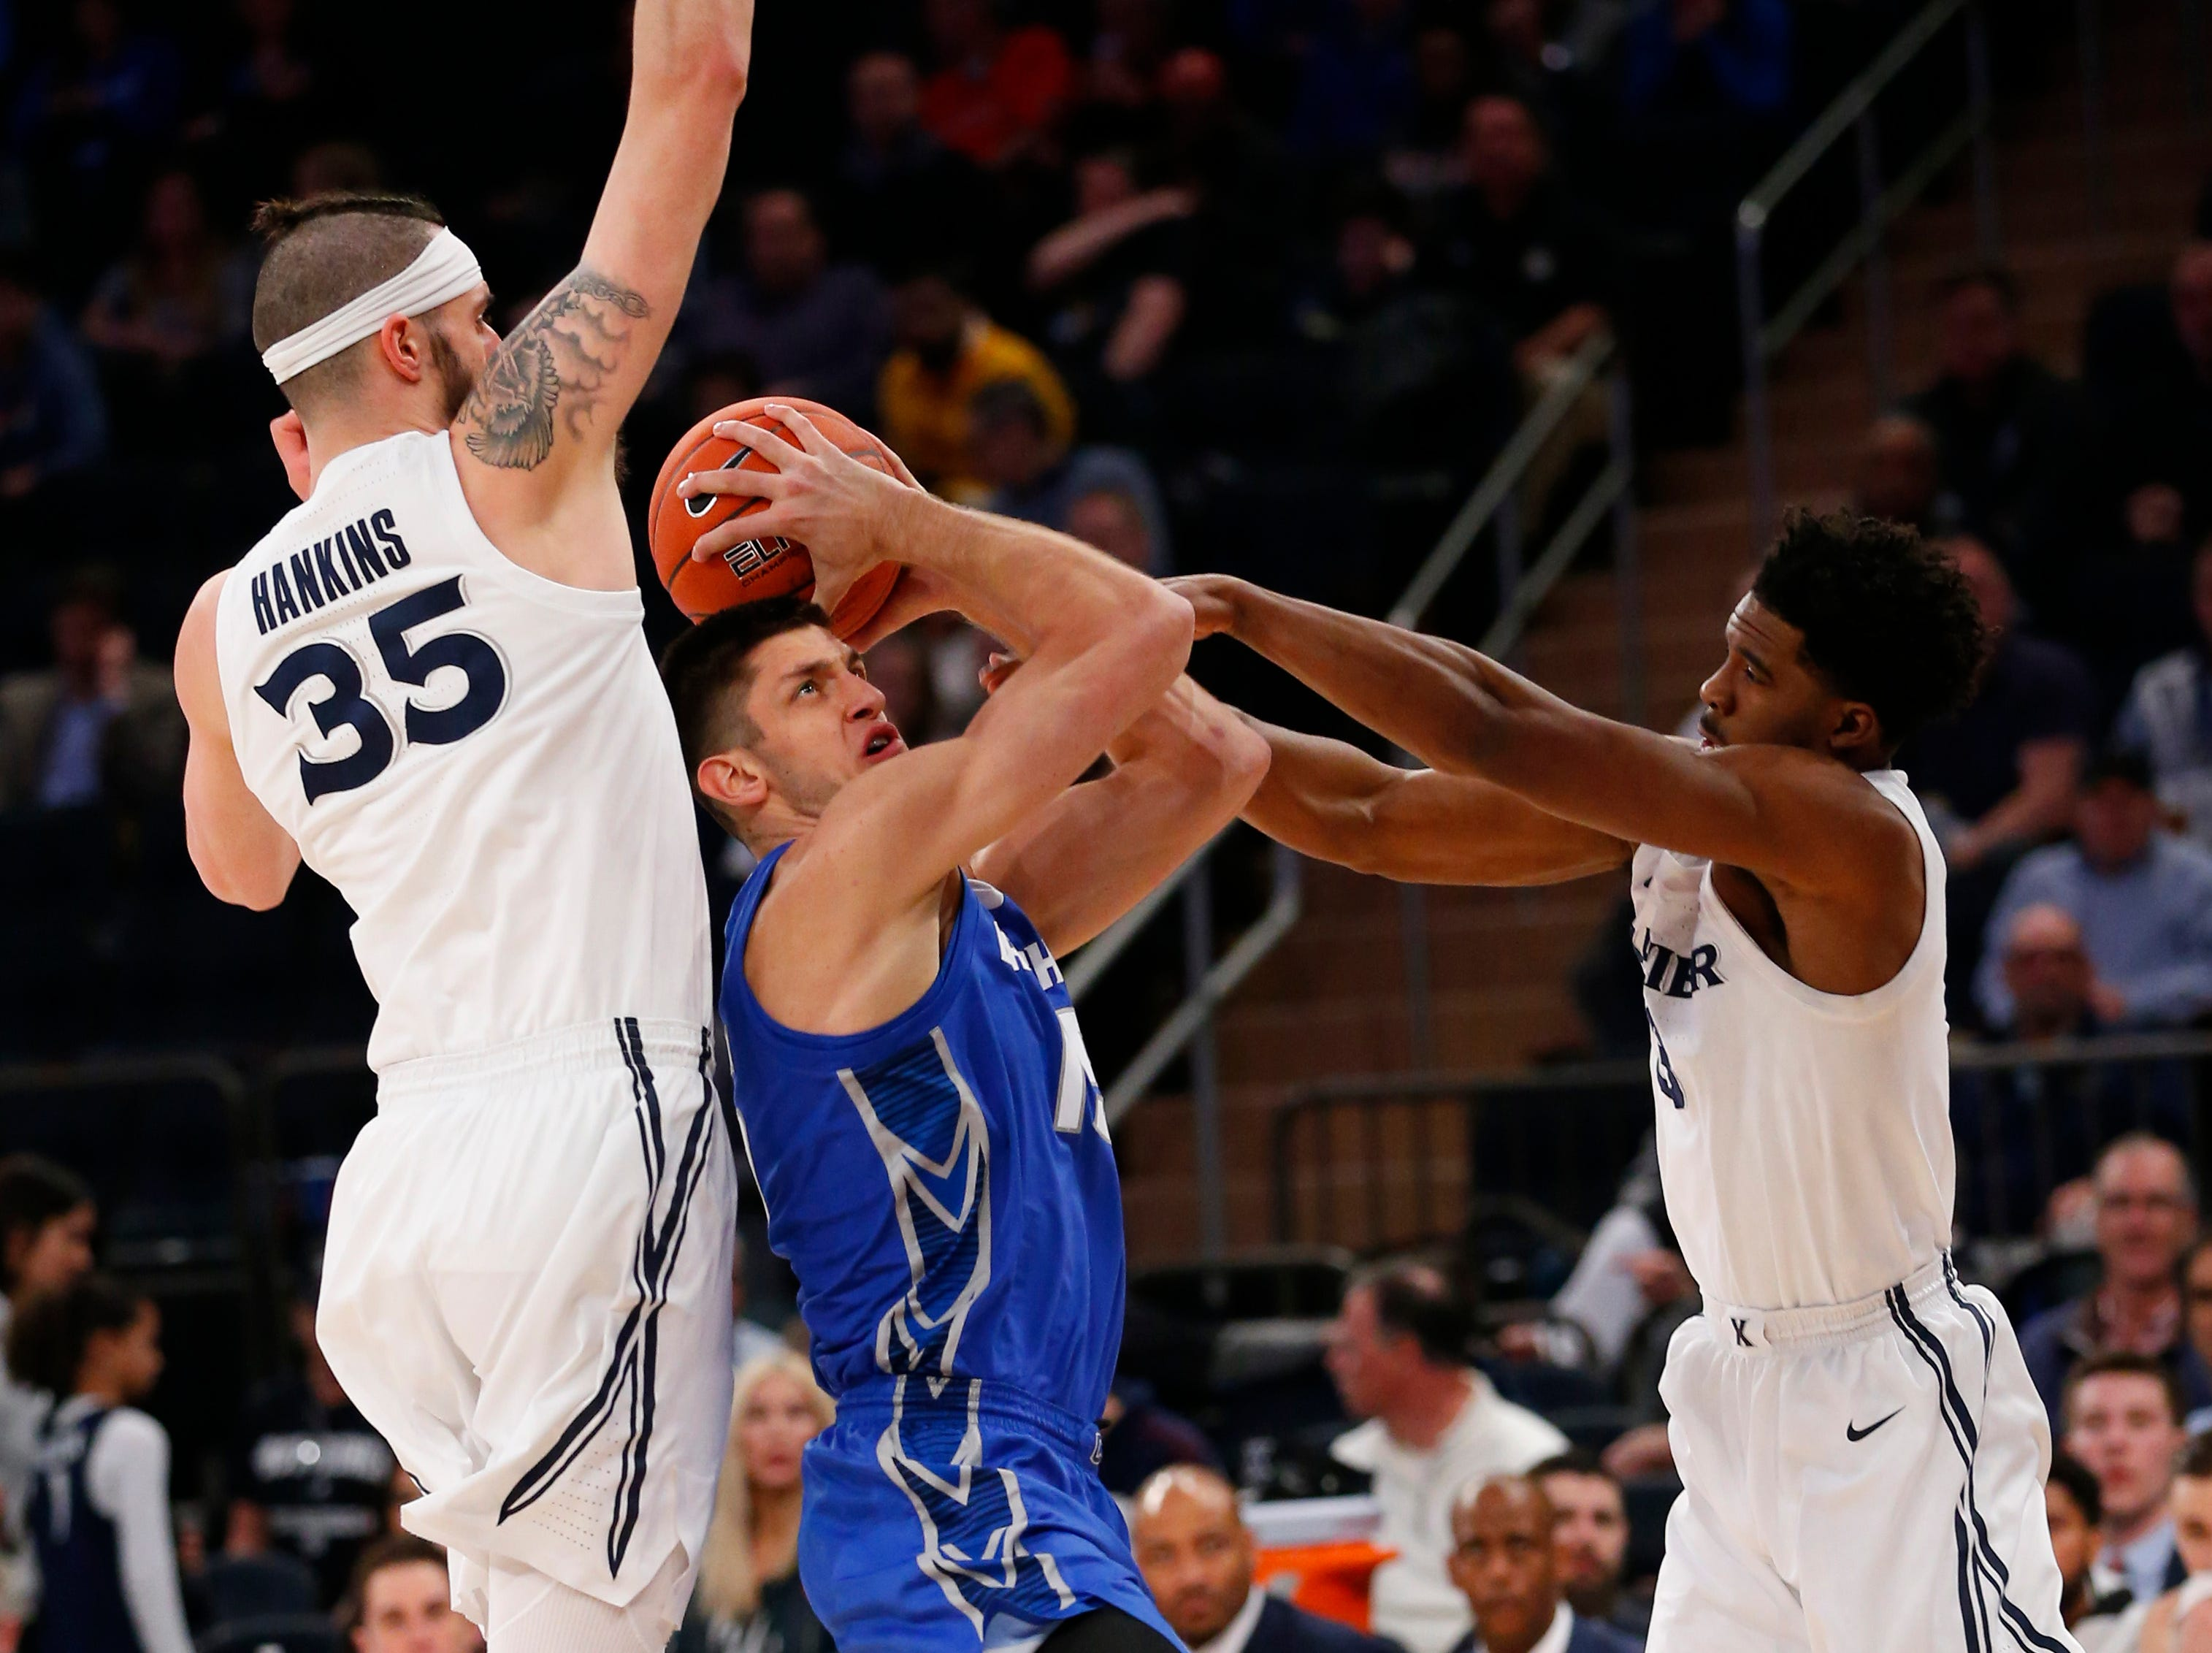 Creighton Bluejays forward Martin Krampelj (15) goes to the basket against Xavier Musketeers forward Zach Hankins (35) and guard Quentin Goodin (3) during the first half of a quarterfinal game of the Big East conference tournament at Madison Square Garden.